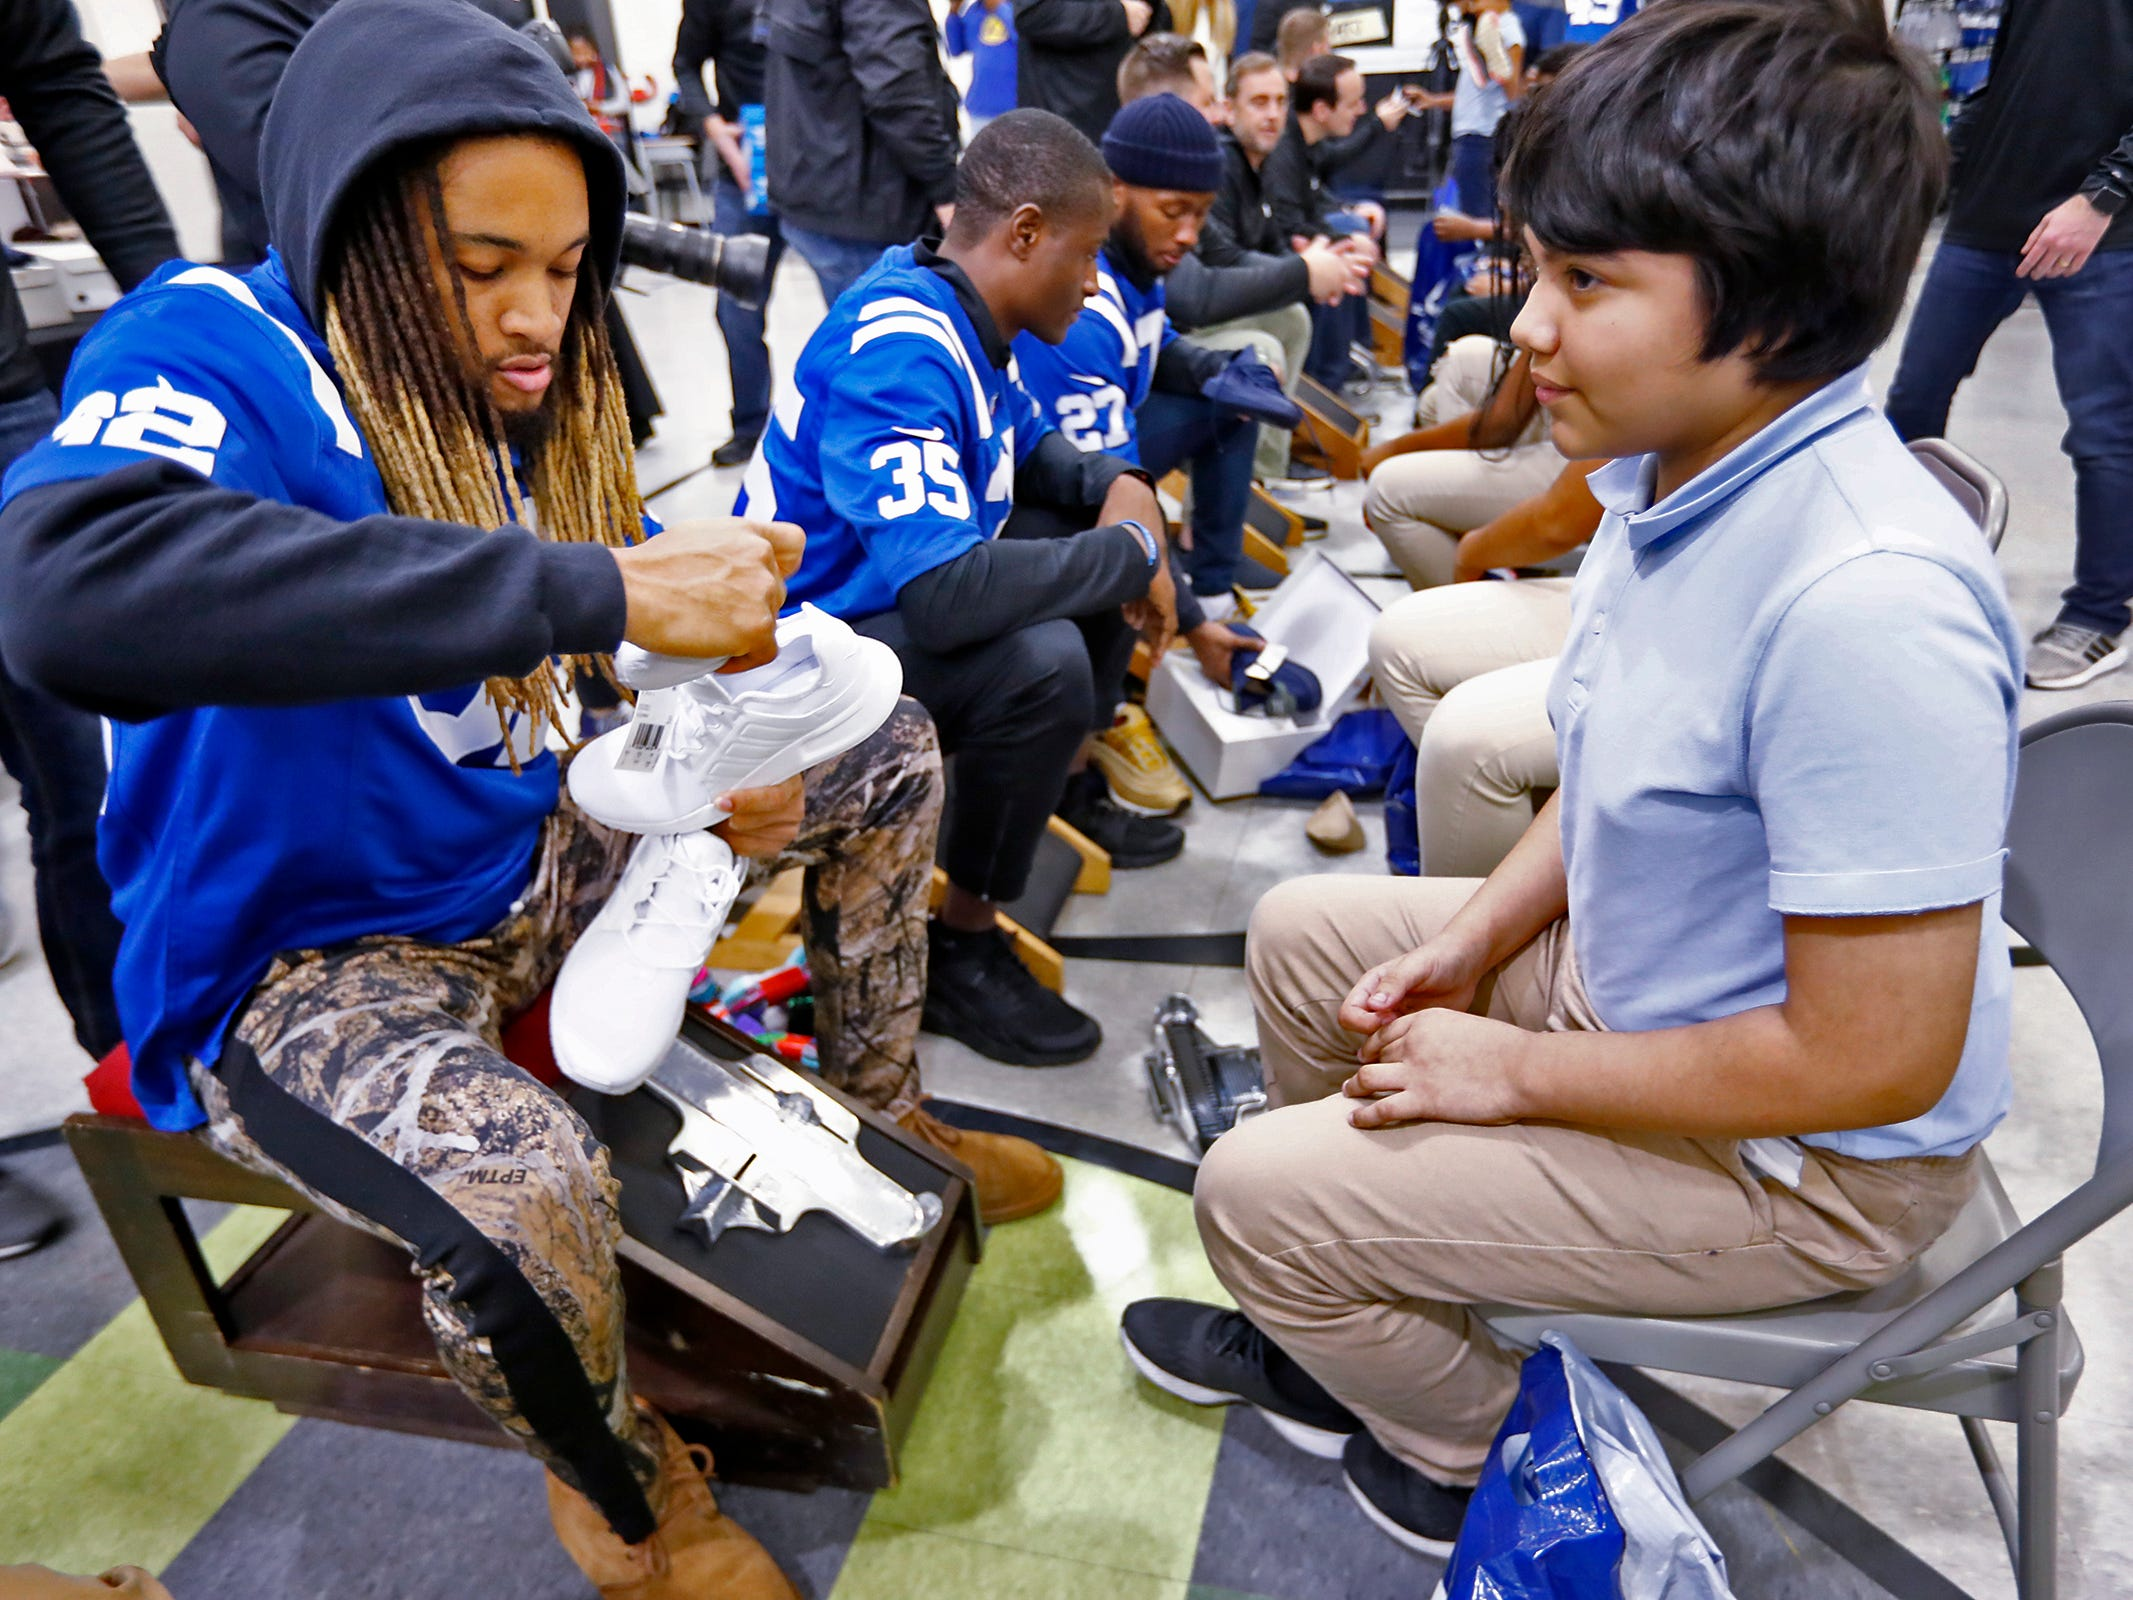 Indianapolis Colts' Jalen Collins fits Adolfo Rodriguez for a new pair of shoes at Brookside School 54, Monday, Dec. 3, 2018.  Colts players and staff joined as LIDS Sports and its parent company Genesco fit and gave new shoes, socks, hats, and snacks to students as part of the 13th annual Cold Feet, Warm Shoes event.